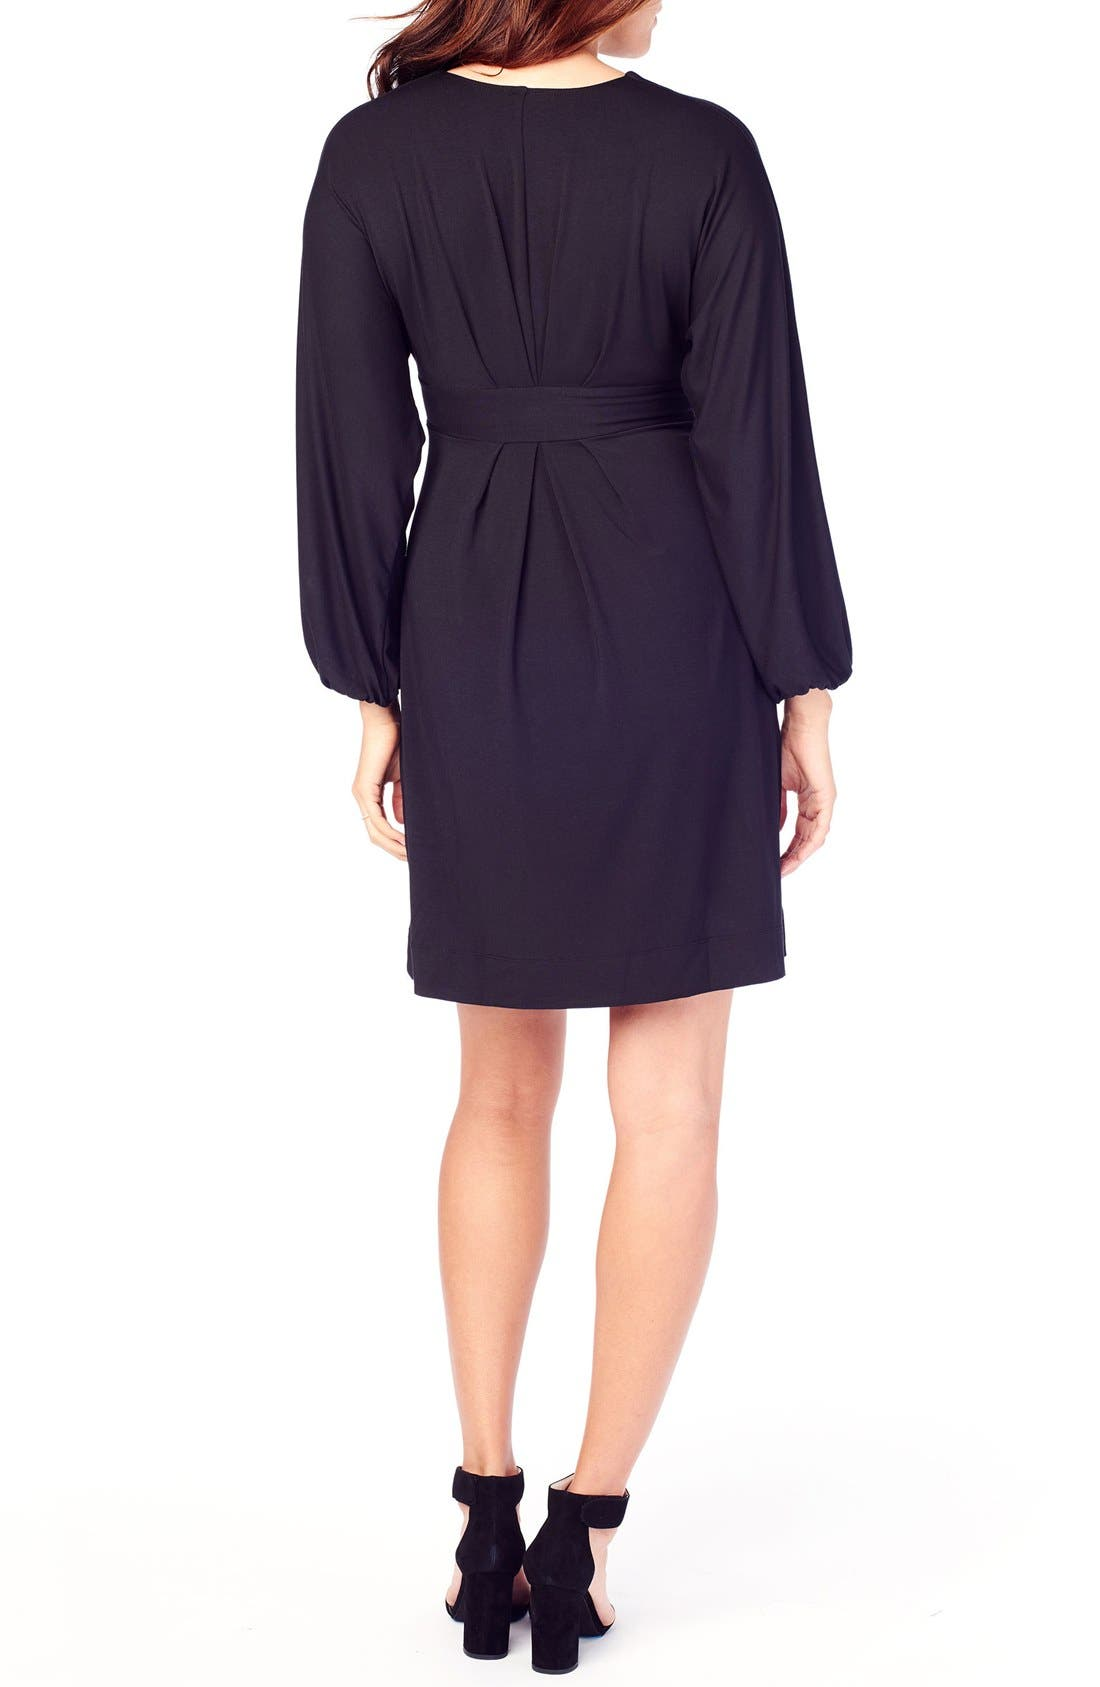 INGRID & ISABEL<SUP>®</SUP>,                             Ingrid & Isabel Jersey Maternity Dress,                             Alternate thumbnail 4, color,                             001